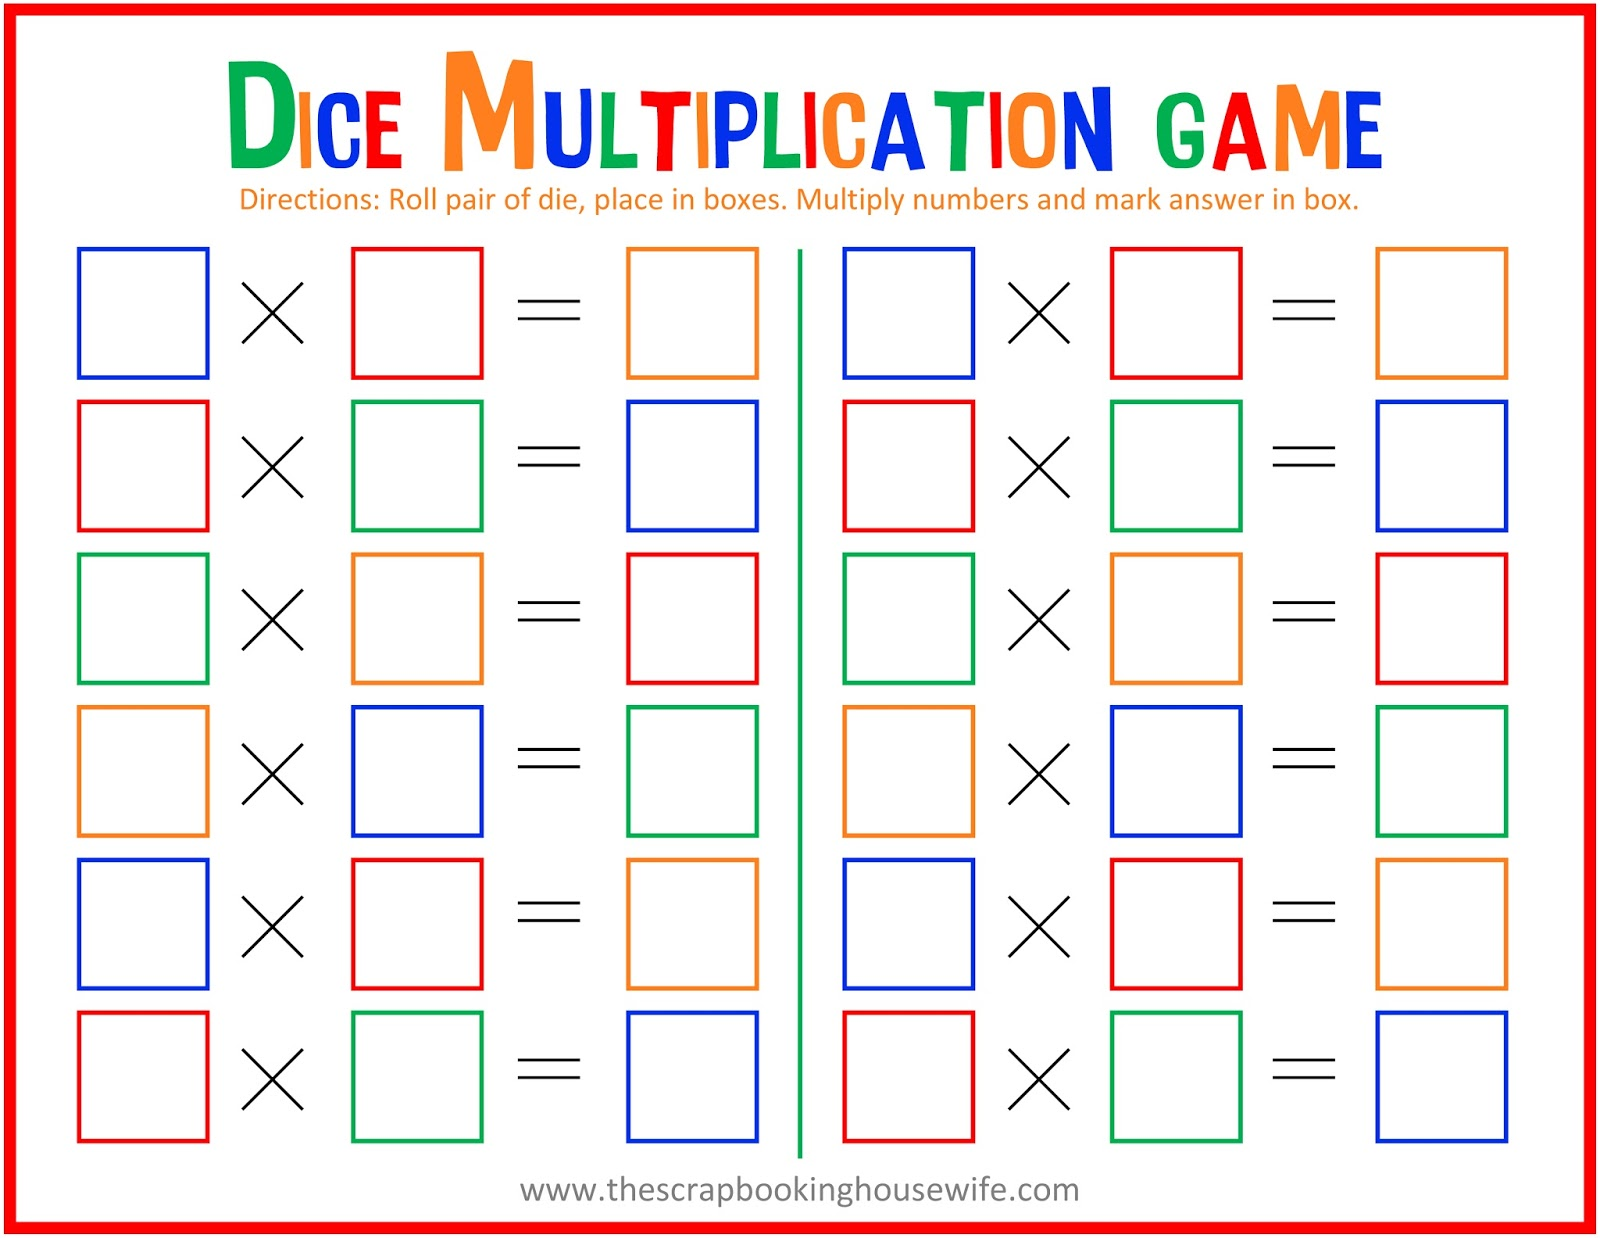 Ellabella Designs Dice Multiplication Math Game For Kids